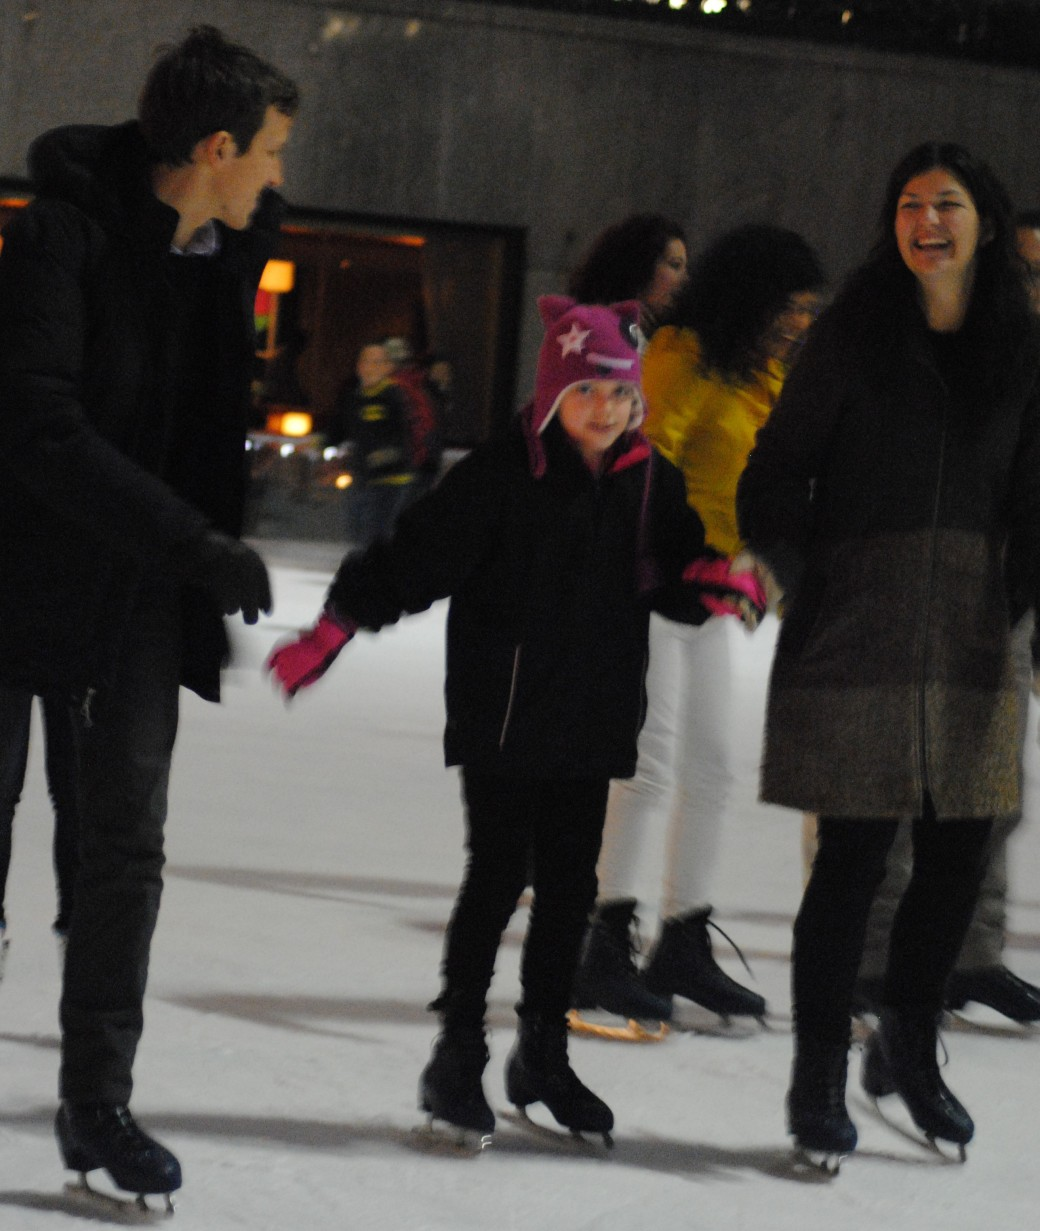 Fun times ice skating!